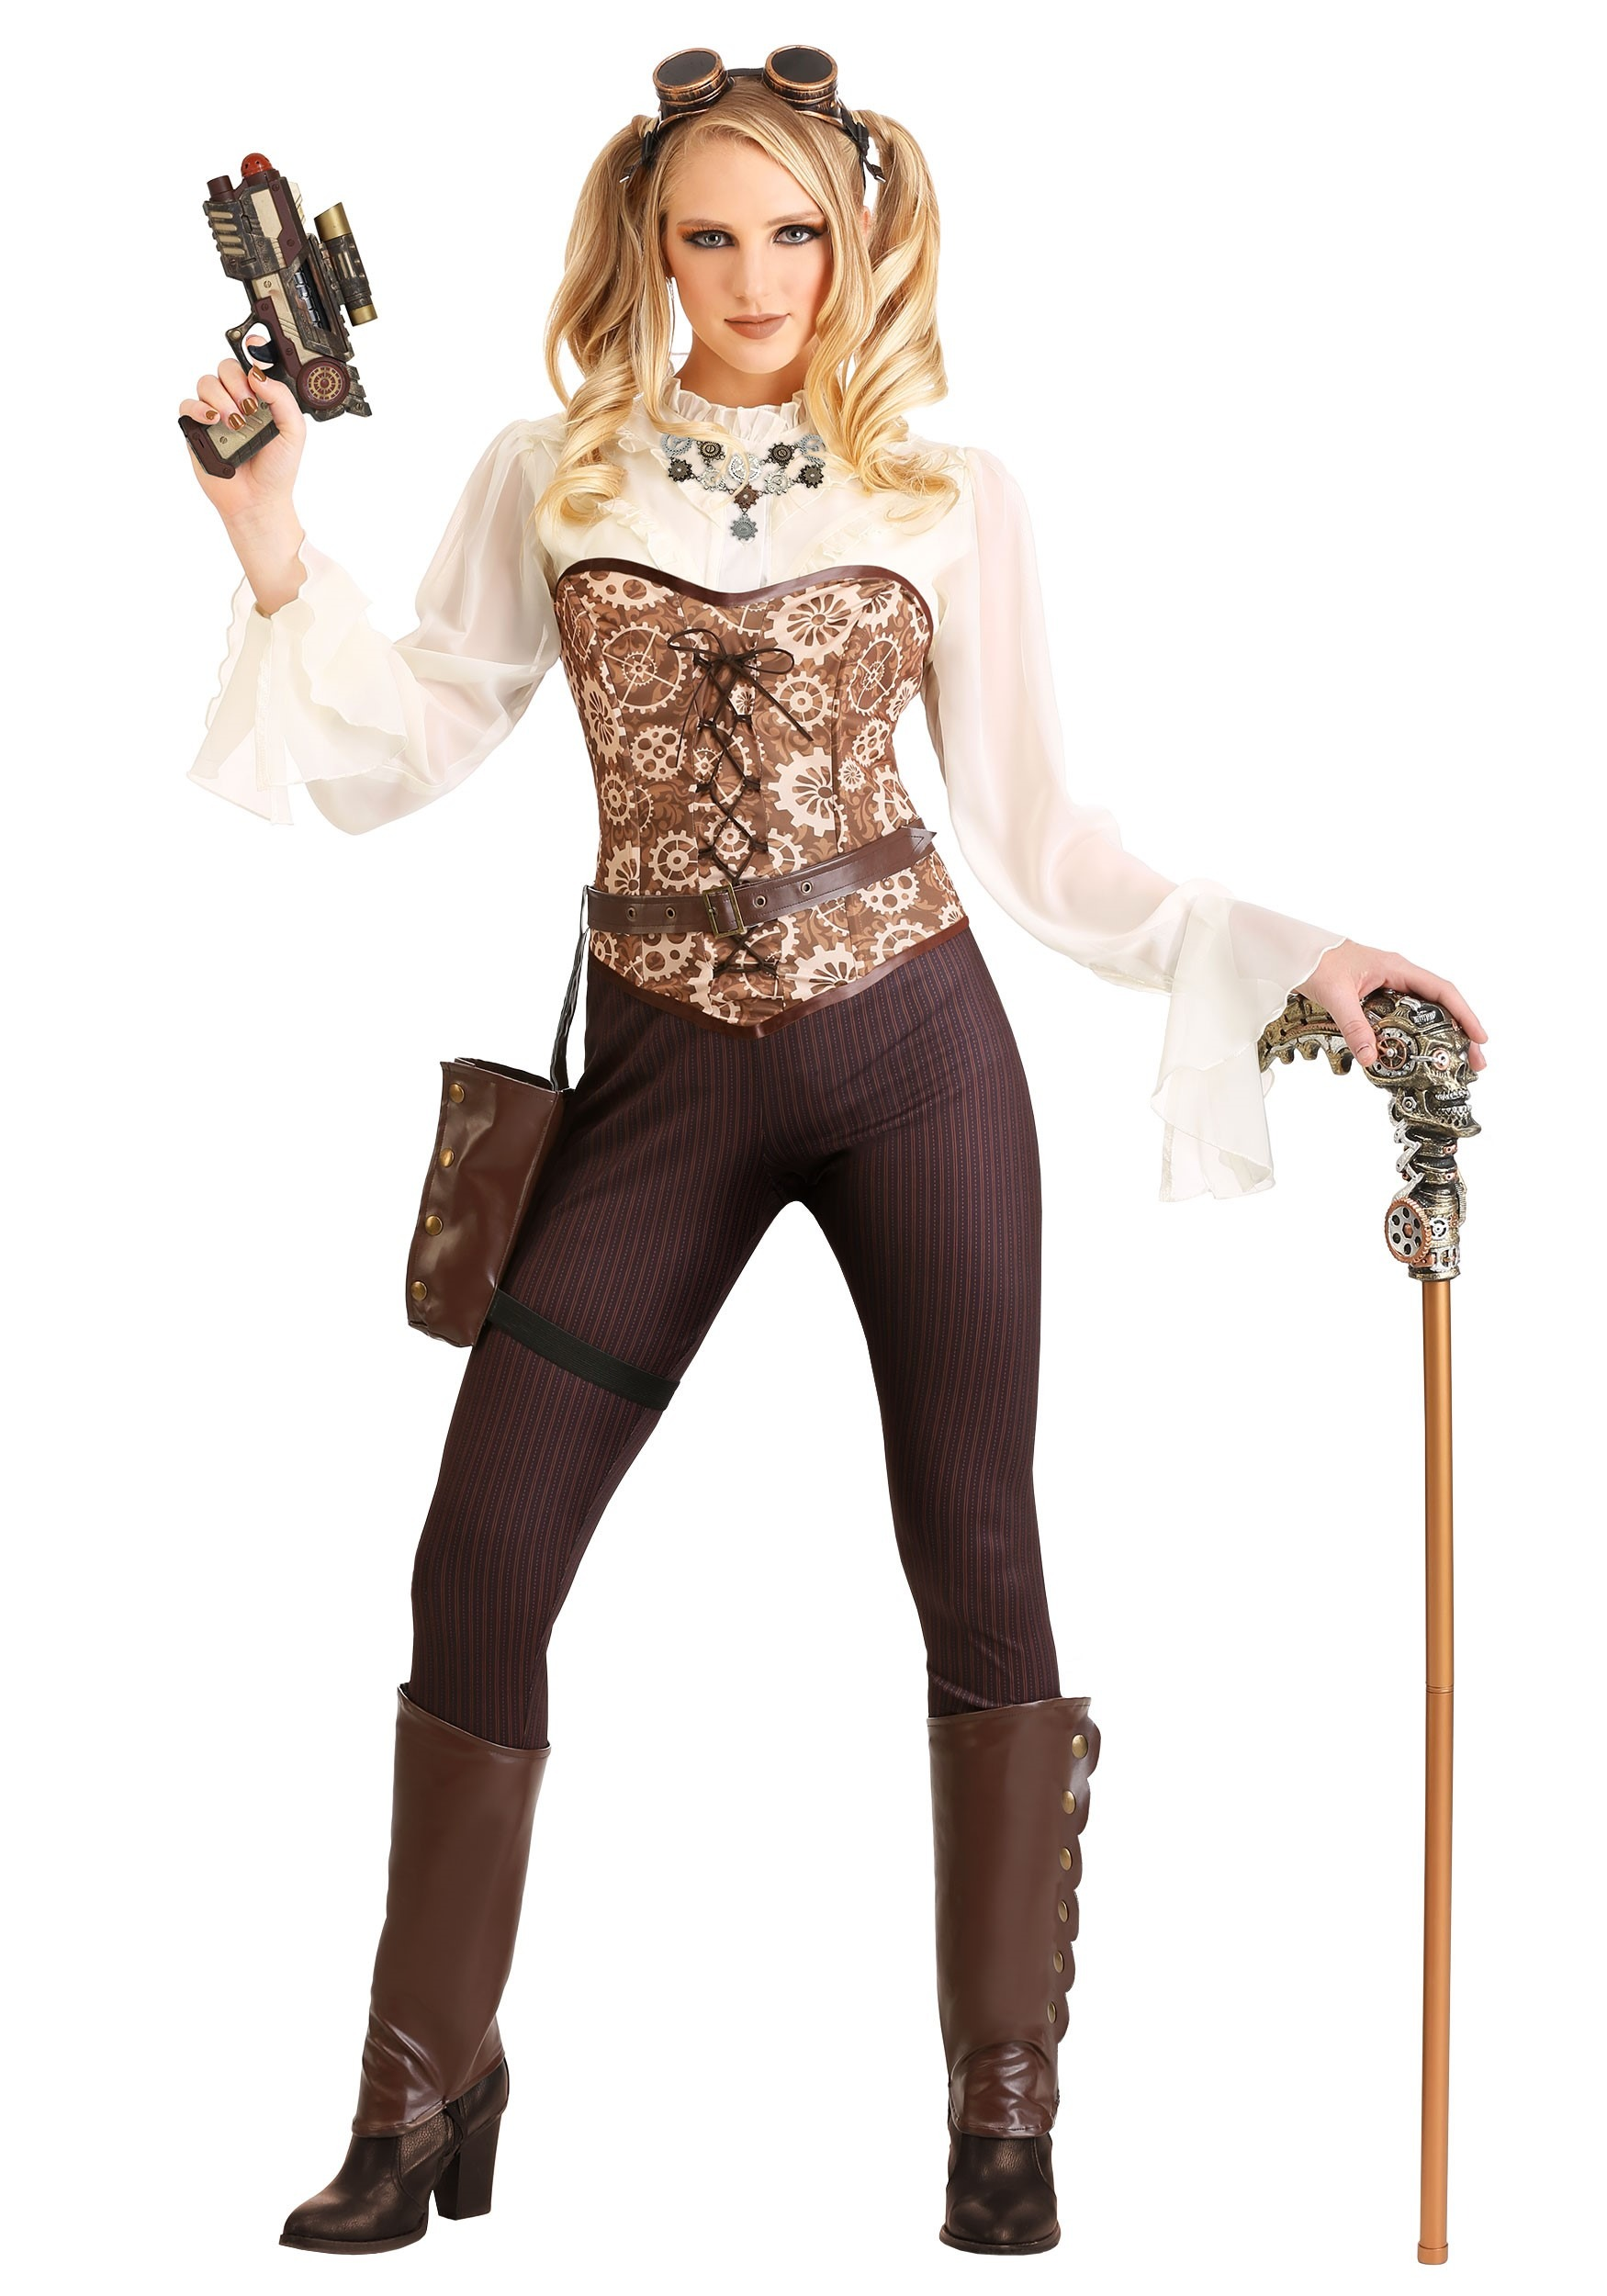 Steampunk Costumes & Accessories on HalloweenCostumes.com